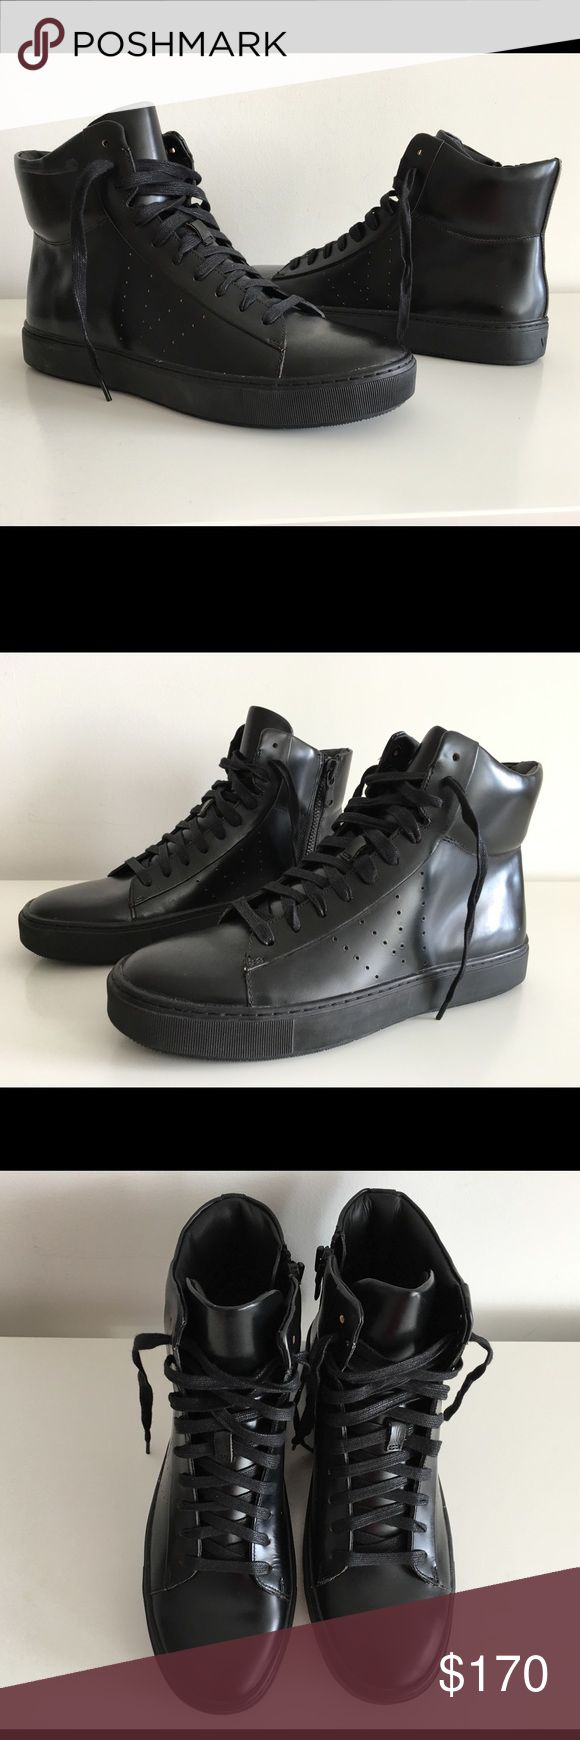 VINCE BLACK HIGH TOP SNEAKERS, SIZE USA9, EUR42.5 VINCE BLACK HIGH TOP SNEAKERS, SIZE USA9, EUR42.5, LACE-UP, ZIP FASTENING ALONG SIDE, BRAND NEW WITH BOX AND DUST BAG Vince Shoes Sneakers